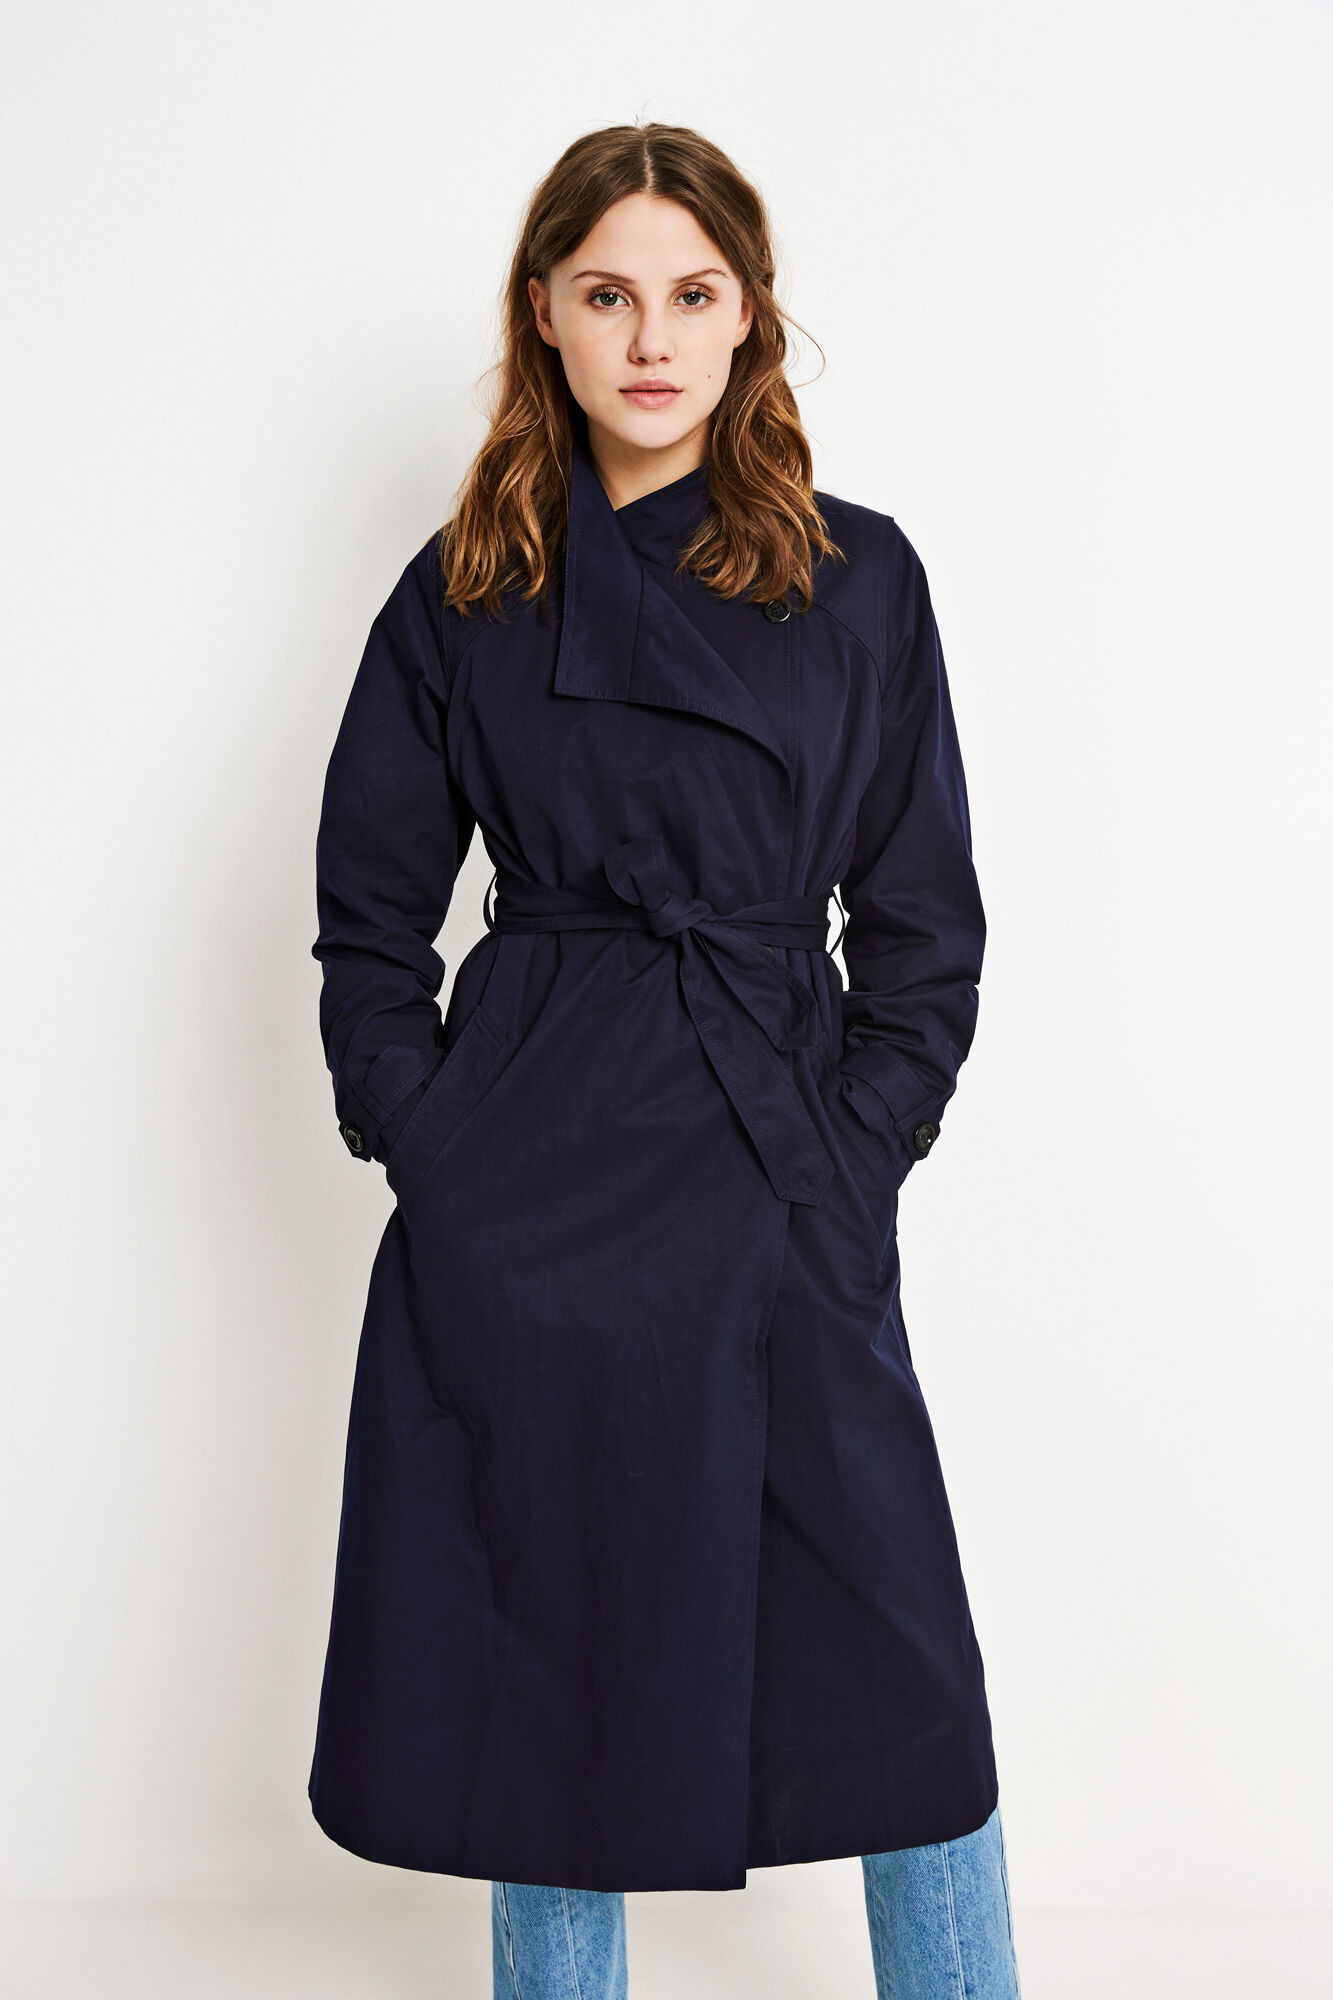 ENCREPE JACKET 6511, NEW NAVY